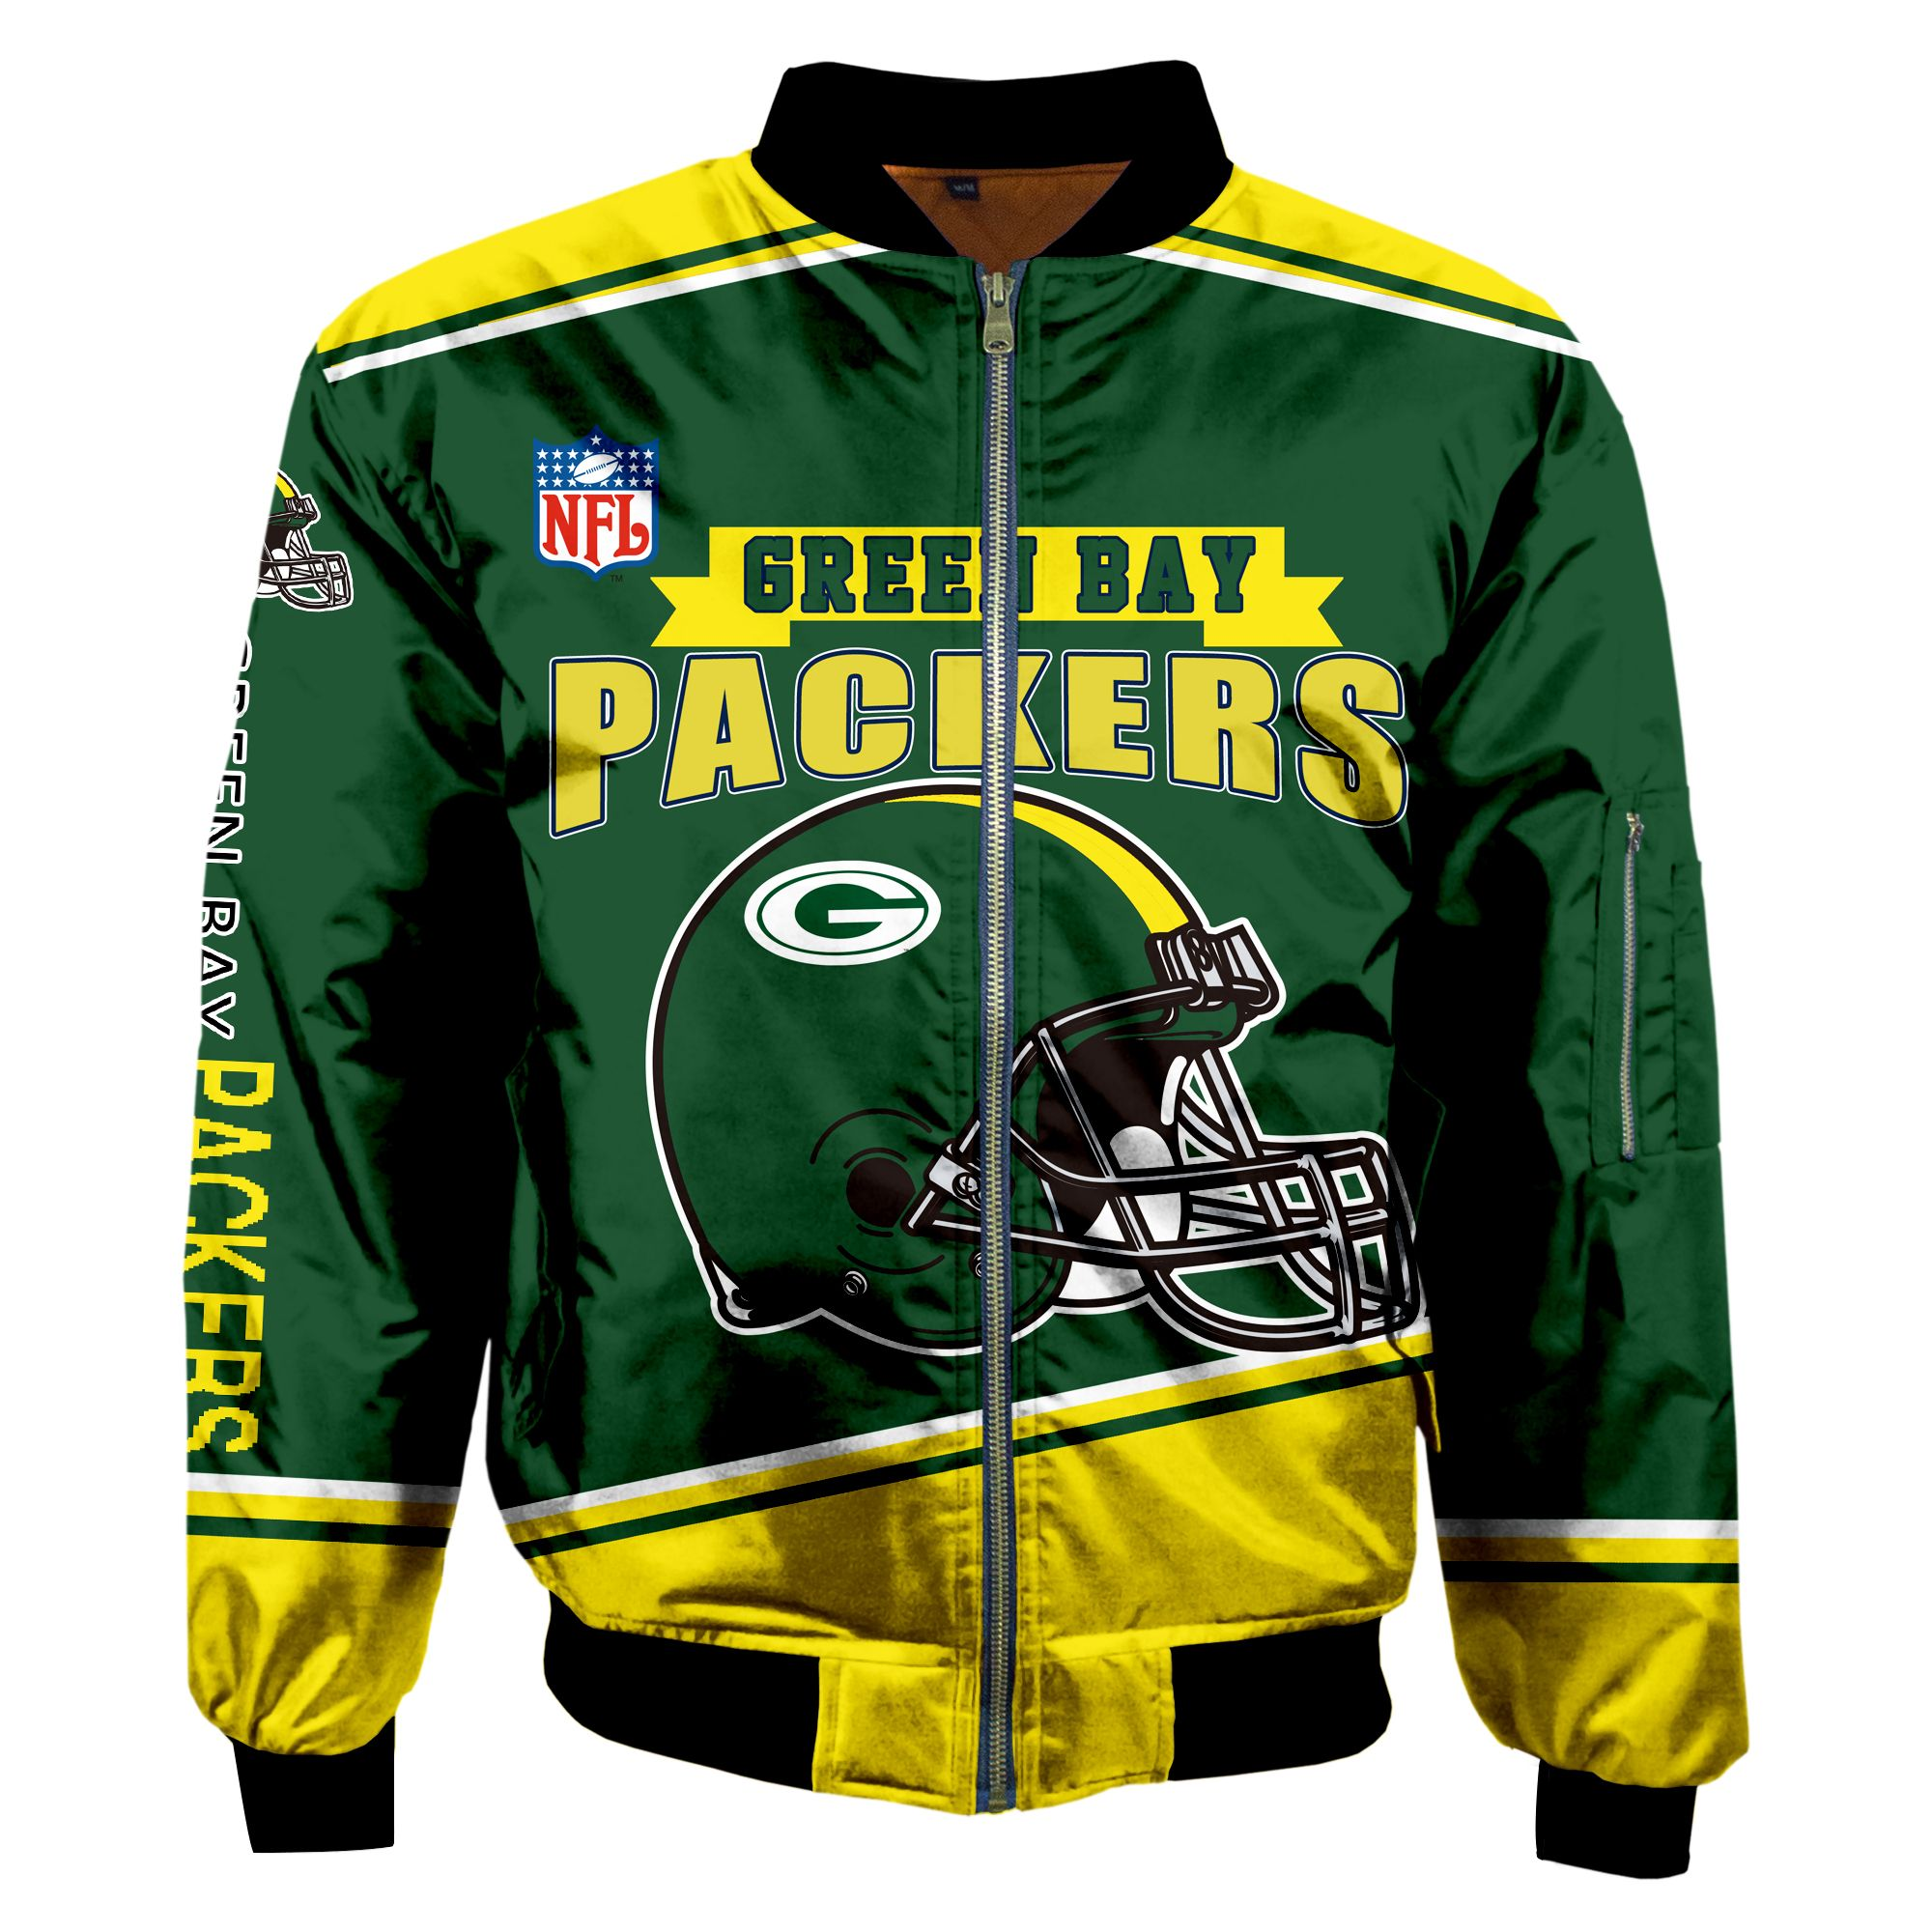 Green Bay Packers Fans Bomber Jacket Men Women Cotton Padded Air Force One Flight Jacket Unisex Coat Mas004 In 2020 Flight Jacket Bomber Jacket Men Bomber Jacket